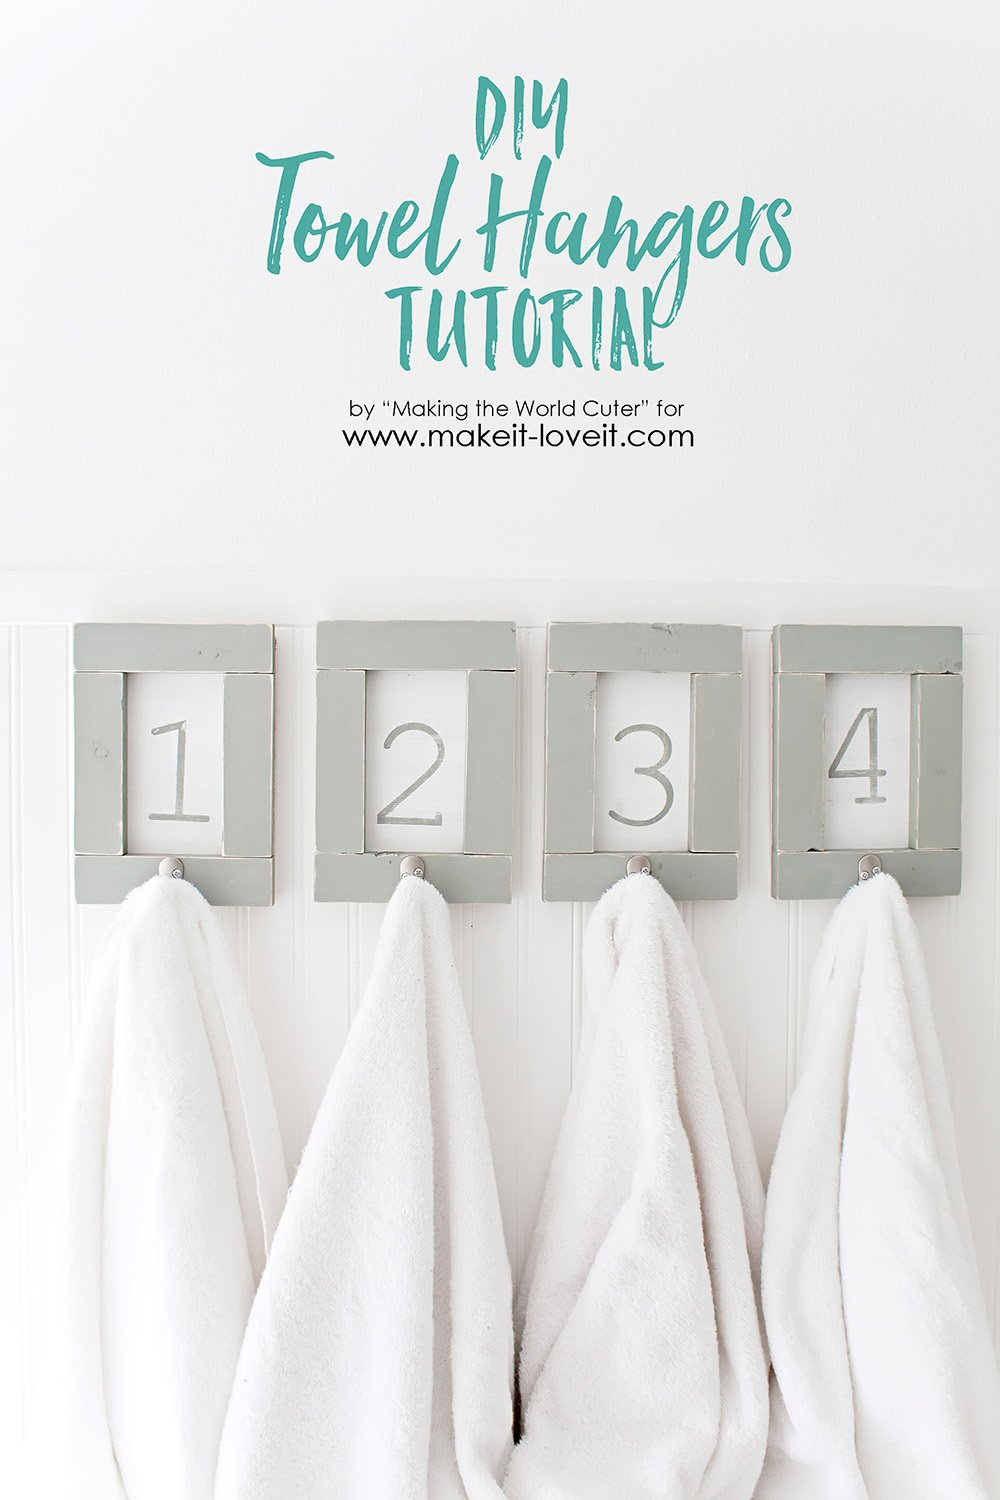 Diy towel hangers tutorial